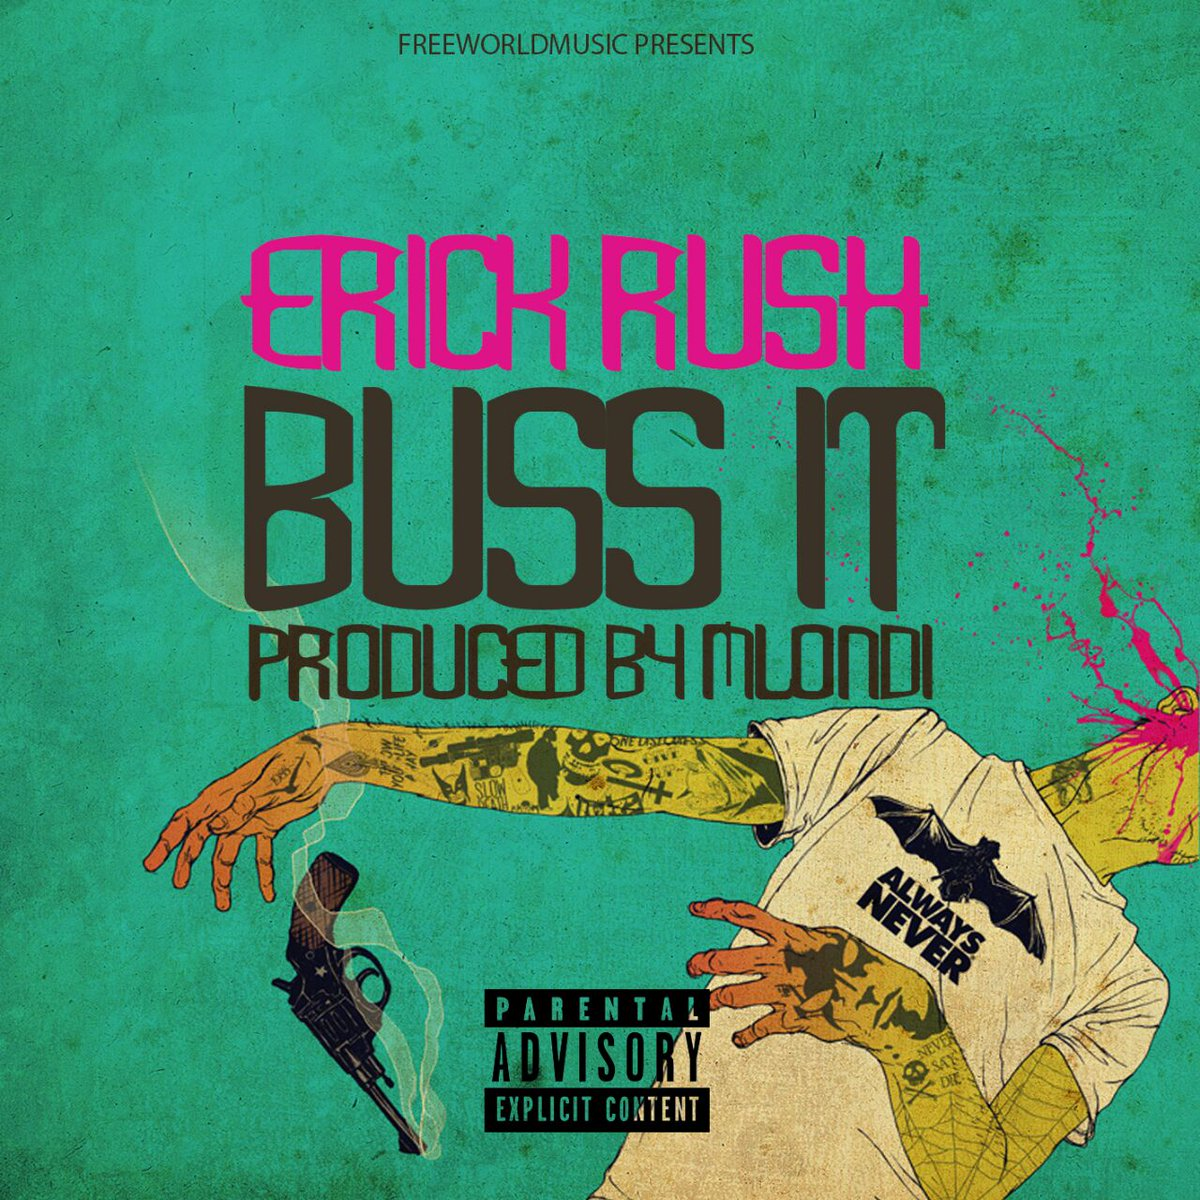 Erick Rush Dropping New 'Buss It' Joint This Friday Cqmly GWEAAQTJ1